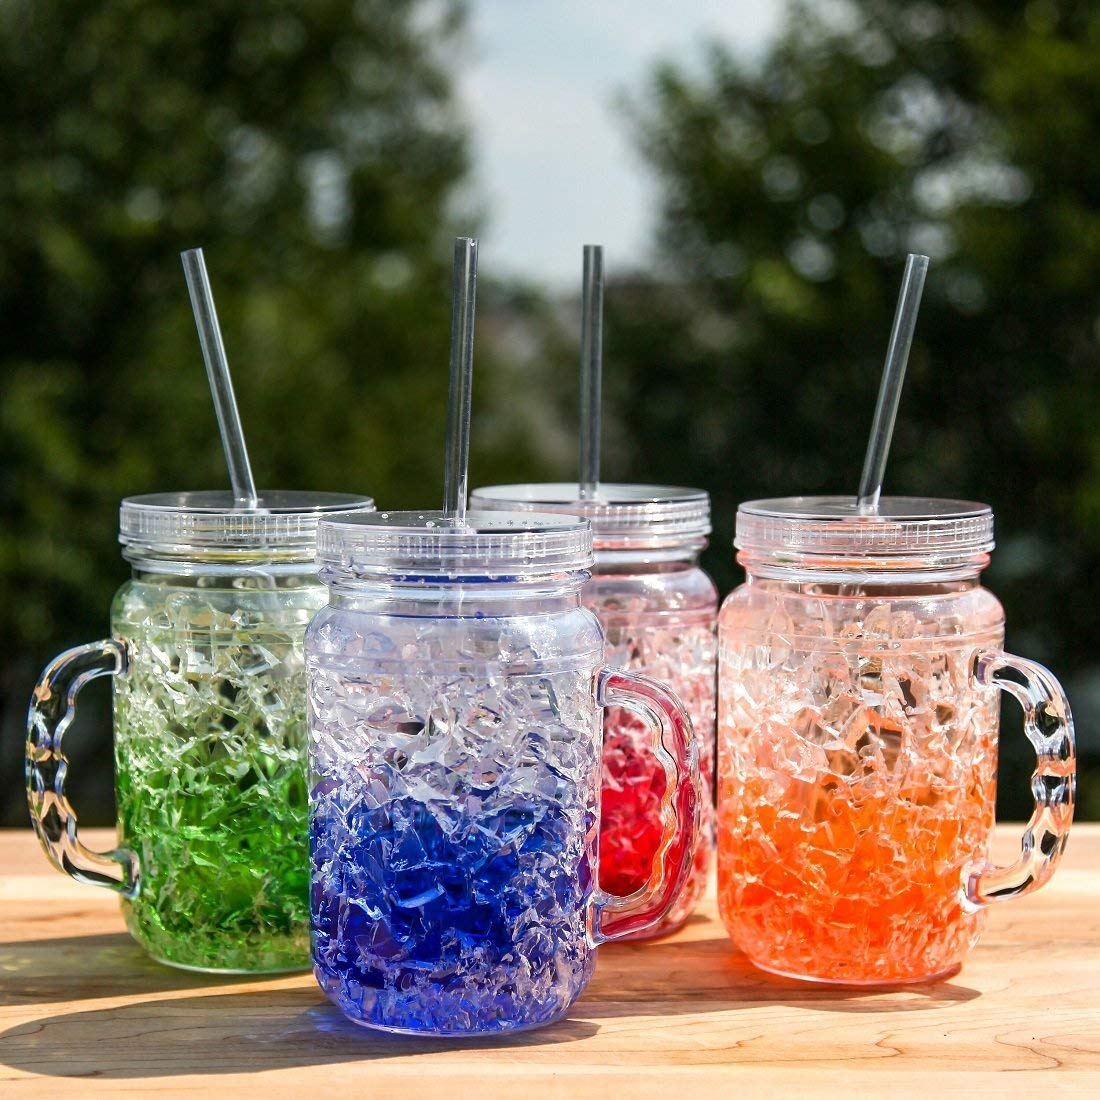 Lily's Home Double Wall Gel-Filled Acrylic Freezer Mason Jar Mugs with Lids and Straws, Great as Old Fashion Drinking Glasses at BBQs and Parties, Assorted Colors (18 oz. Each, Set of 4) by Lilyshome (Image #2)